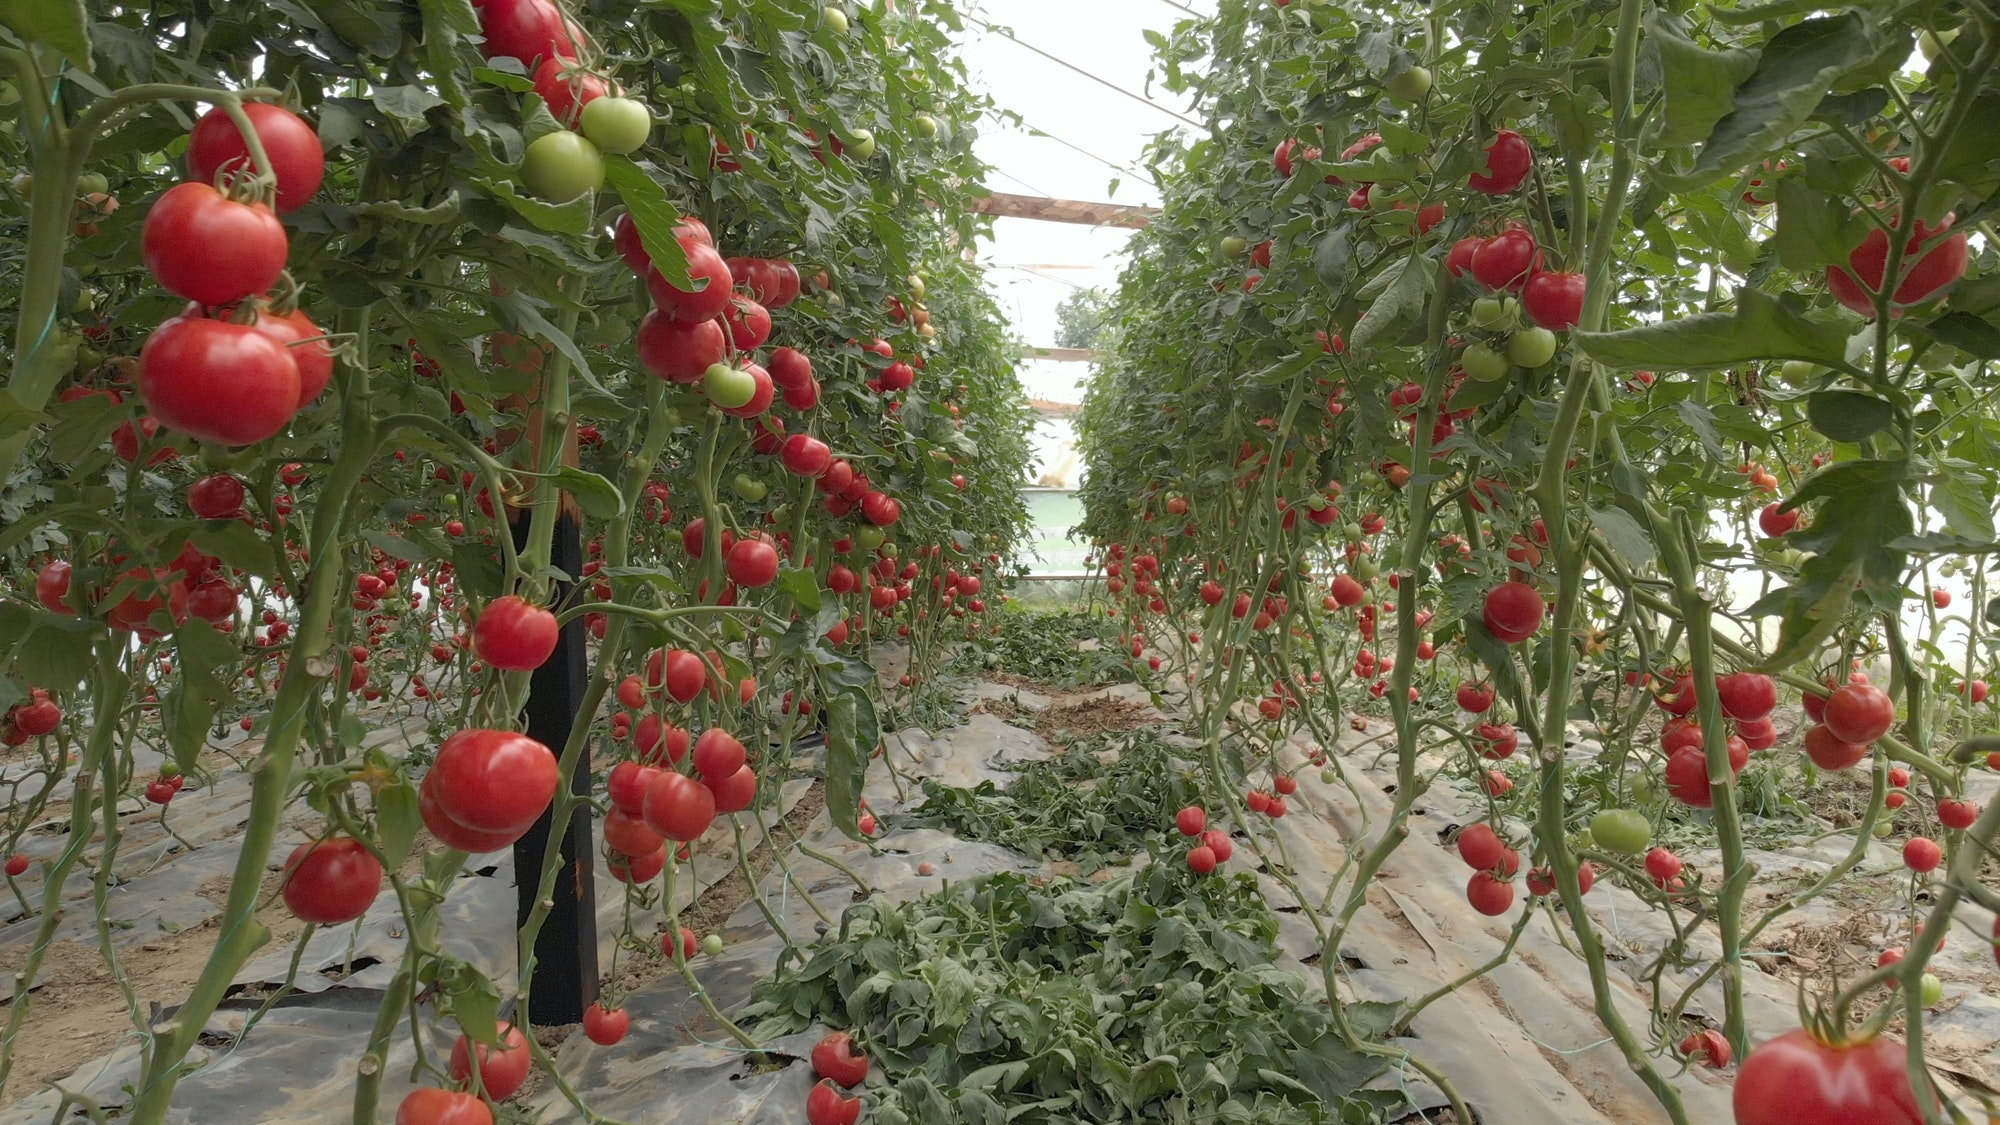 Indoor Growers World - Ripe Tomatoes Ready To Pick in a Greenhouse